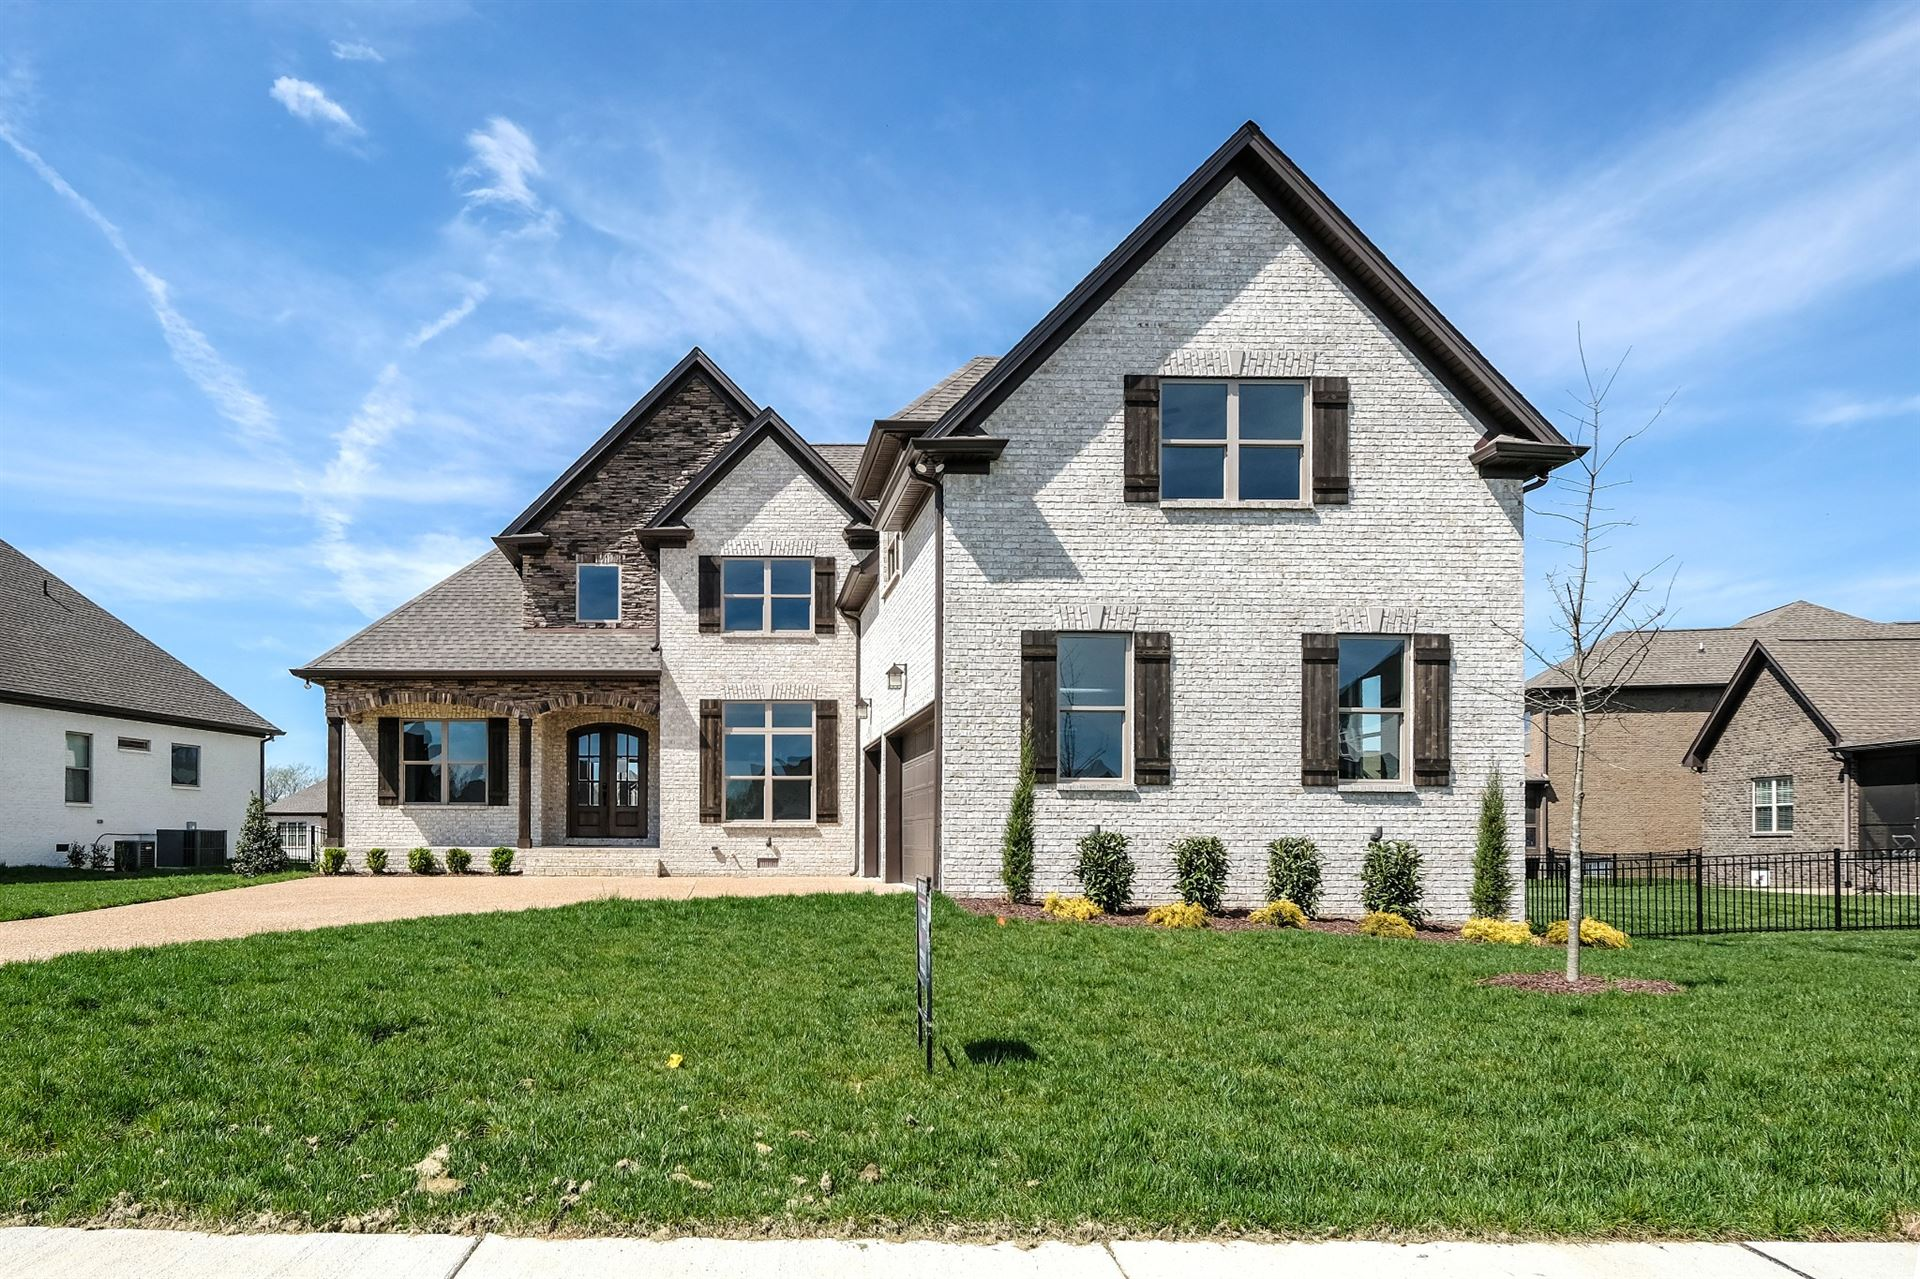 Photo of 6022 Trout Lane (Lot 254), Spring Hill, TN 37174 (MLS # 2074817)